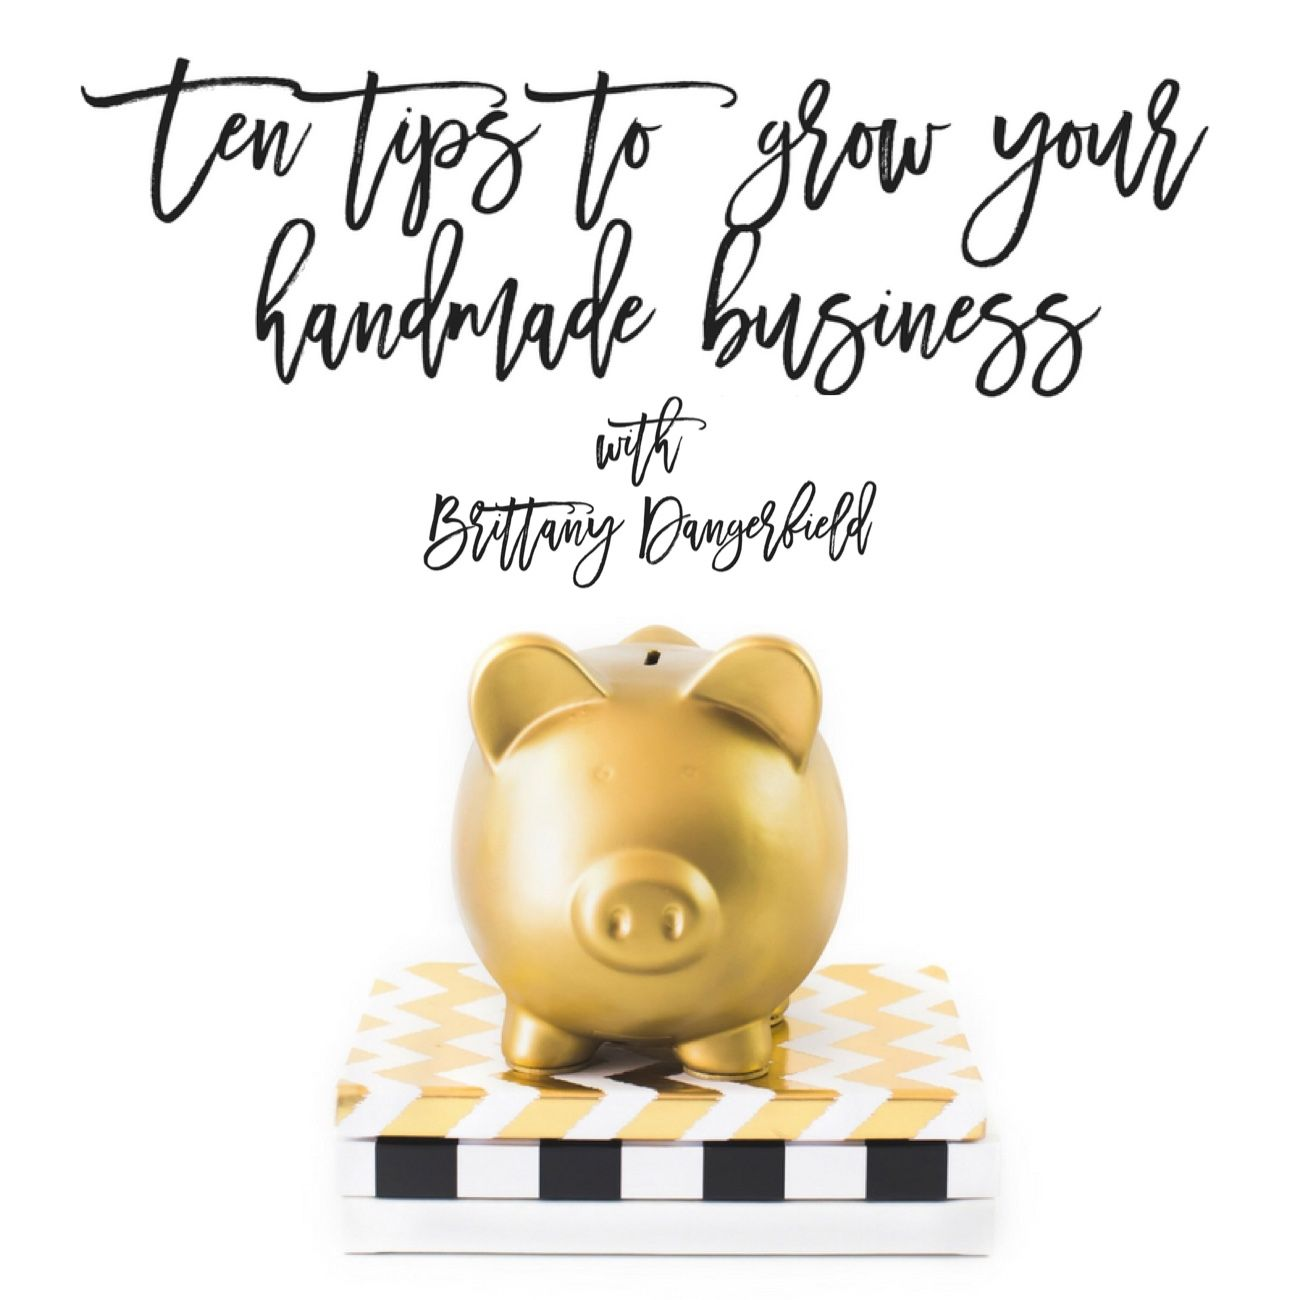 Guest Post 10 tips for handmade businesses with Brittany